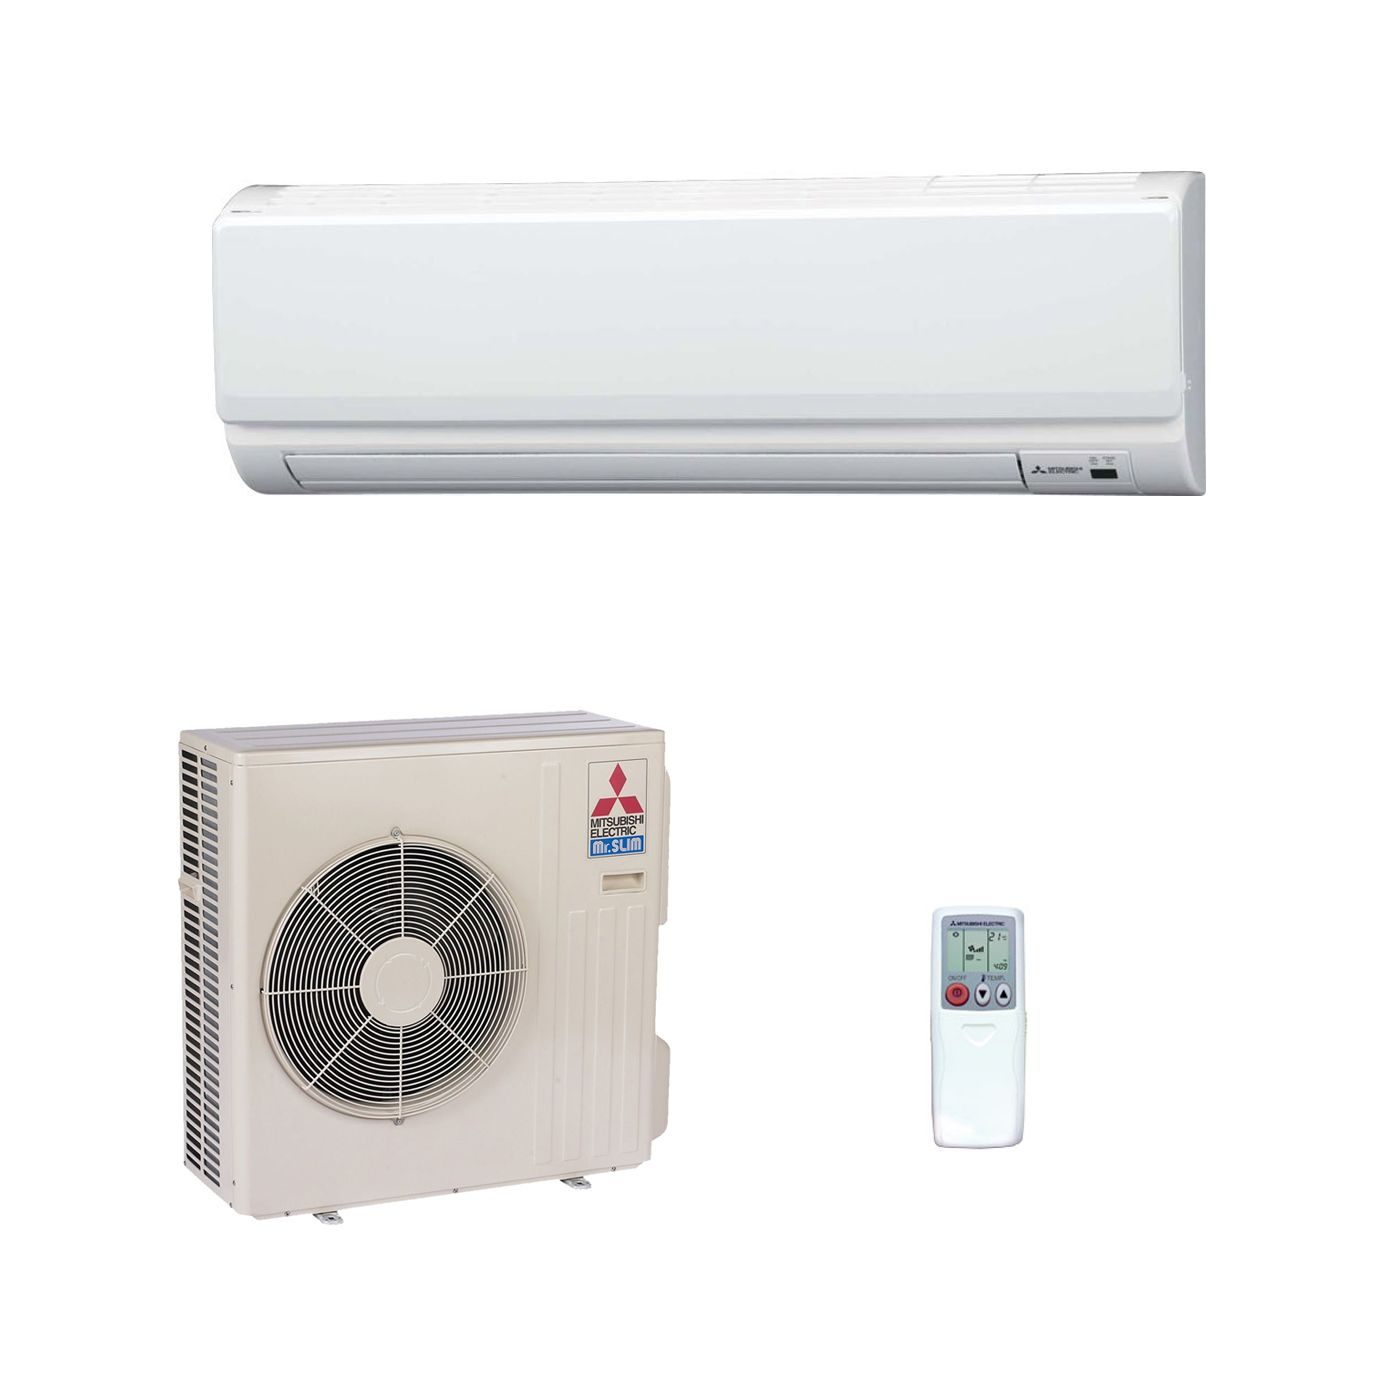 split conditioning services sheer comfort duct mitsubishi no air ac ductless mini heating